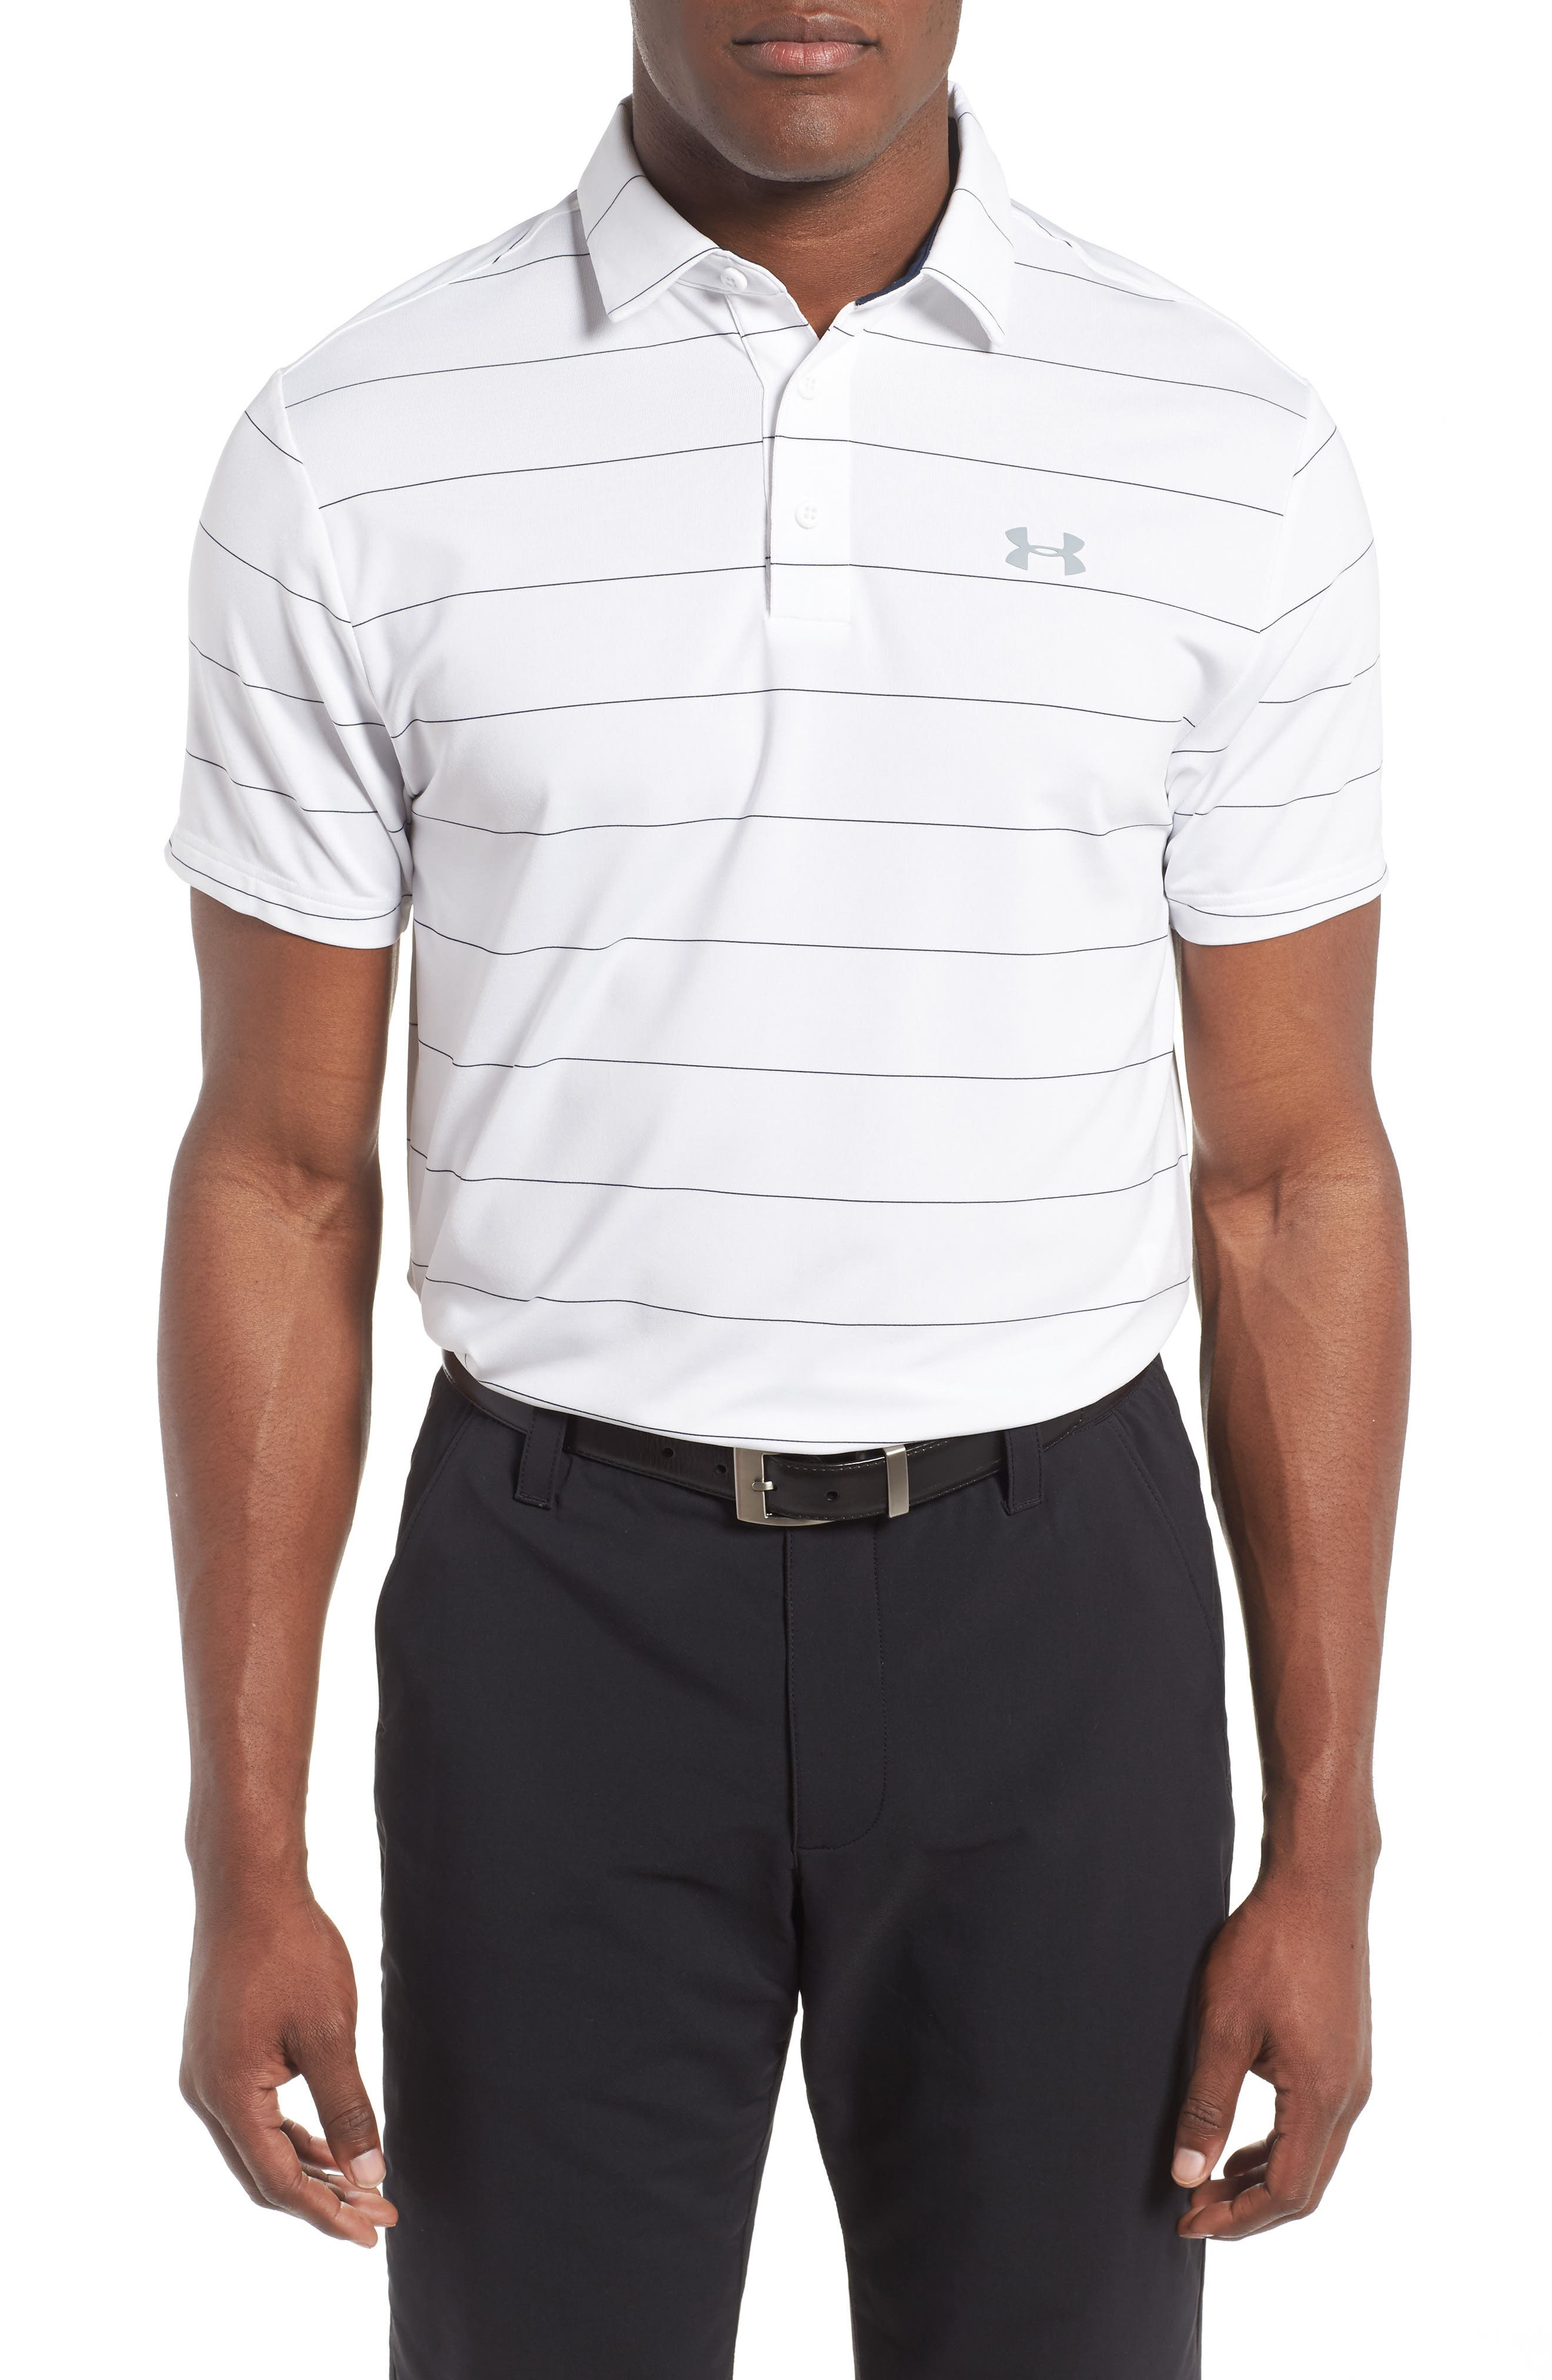 Main Image - Under Armour 'Playoff' Loose Fit Short Sleeve Polo